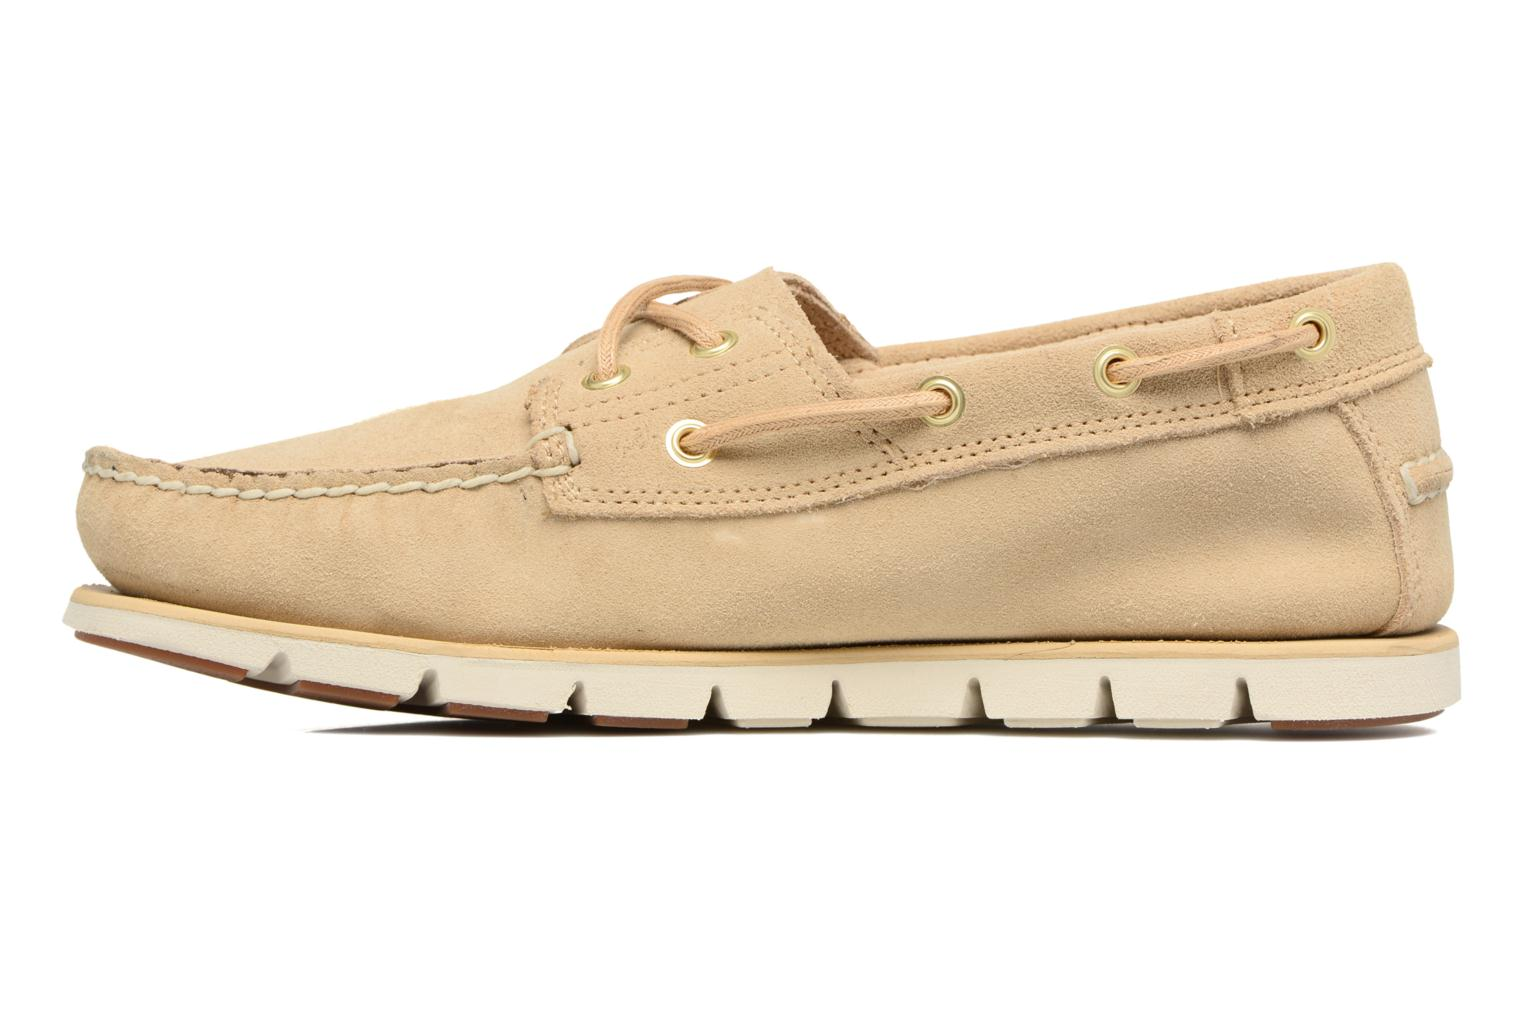 Chaussures à lacets Timberland Tidelands 2 Eye Beige vue face